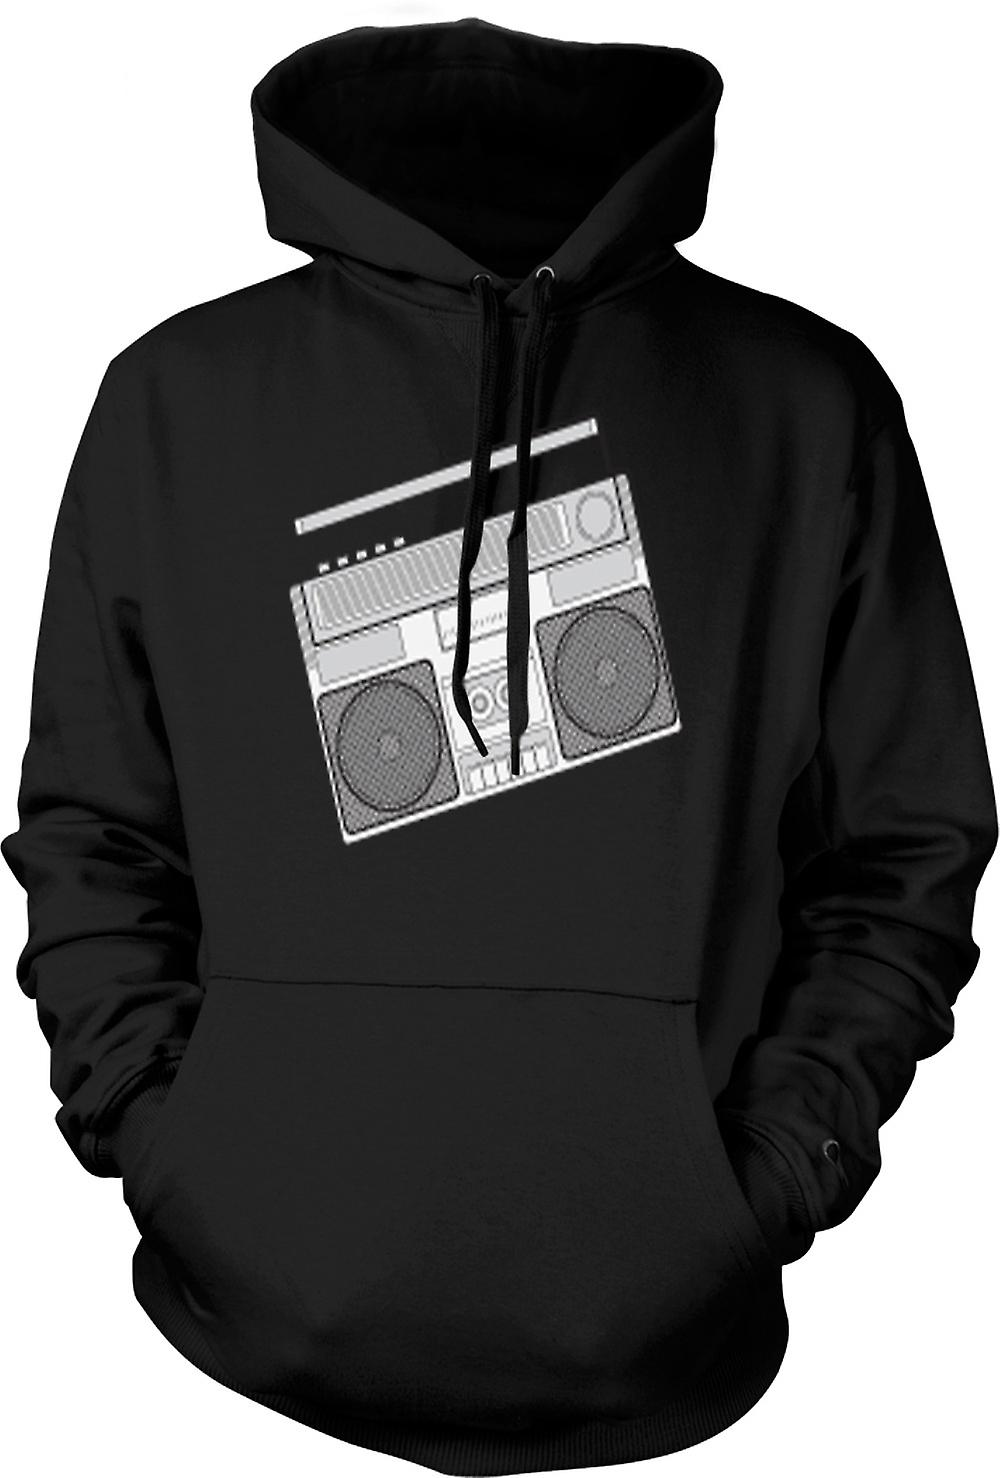 Mens Hoodie - Ghetto Blaster Design Drawing